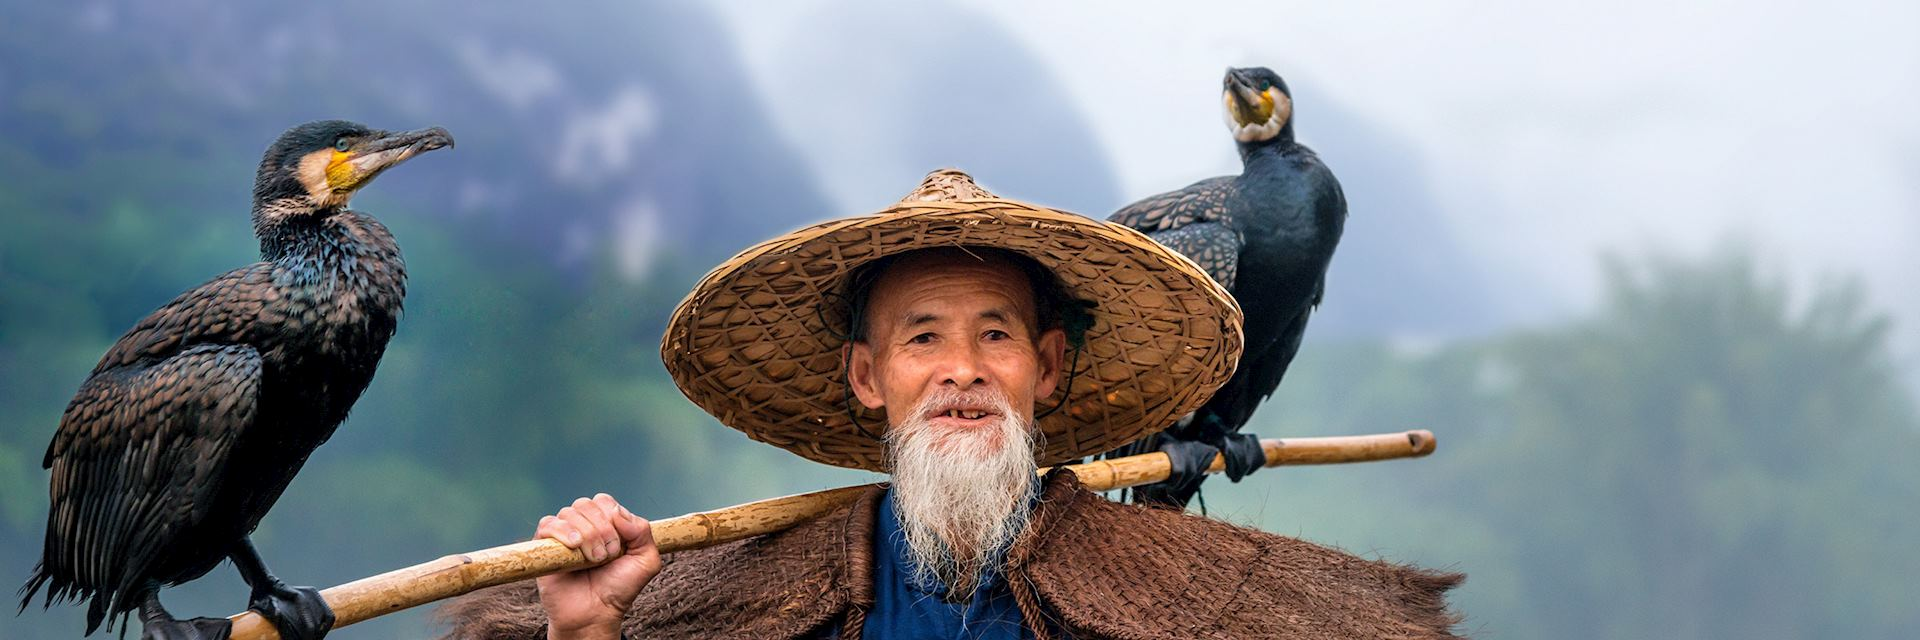 Fisherman with cormorants on the Li River